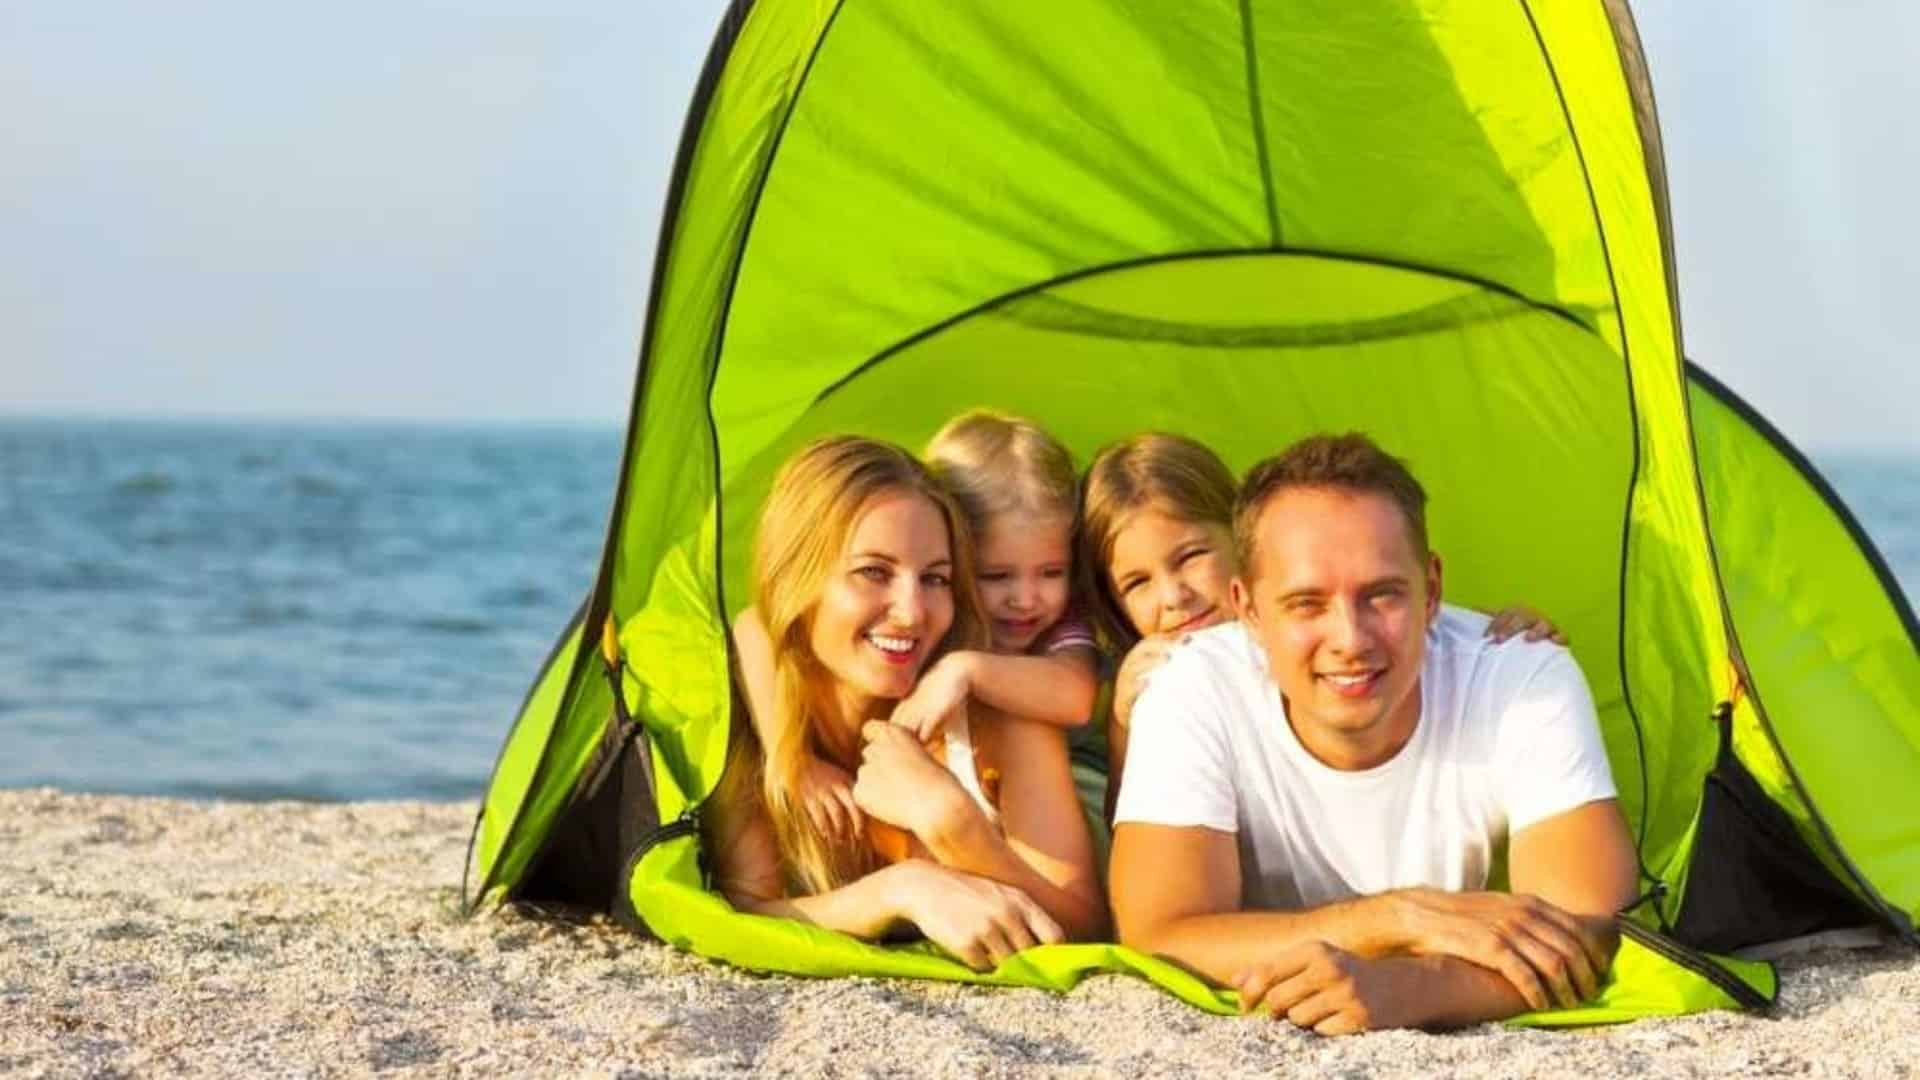 Best Beach Tent for Family of 2018 Complete Reviews with Comparison